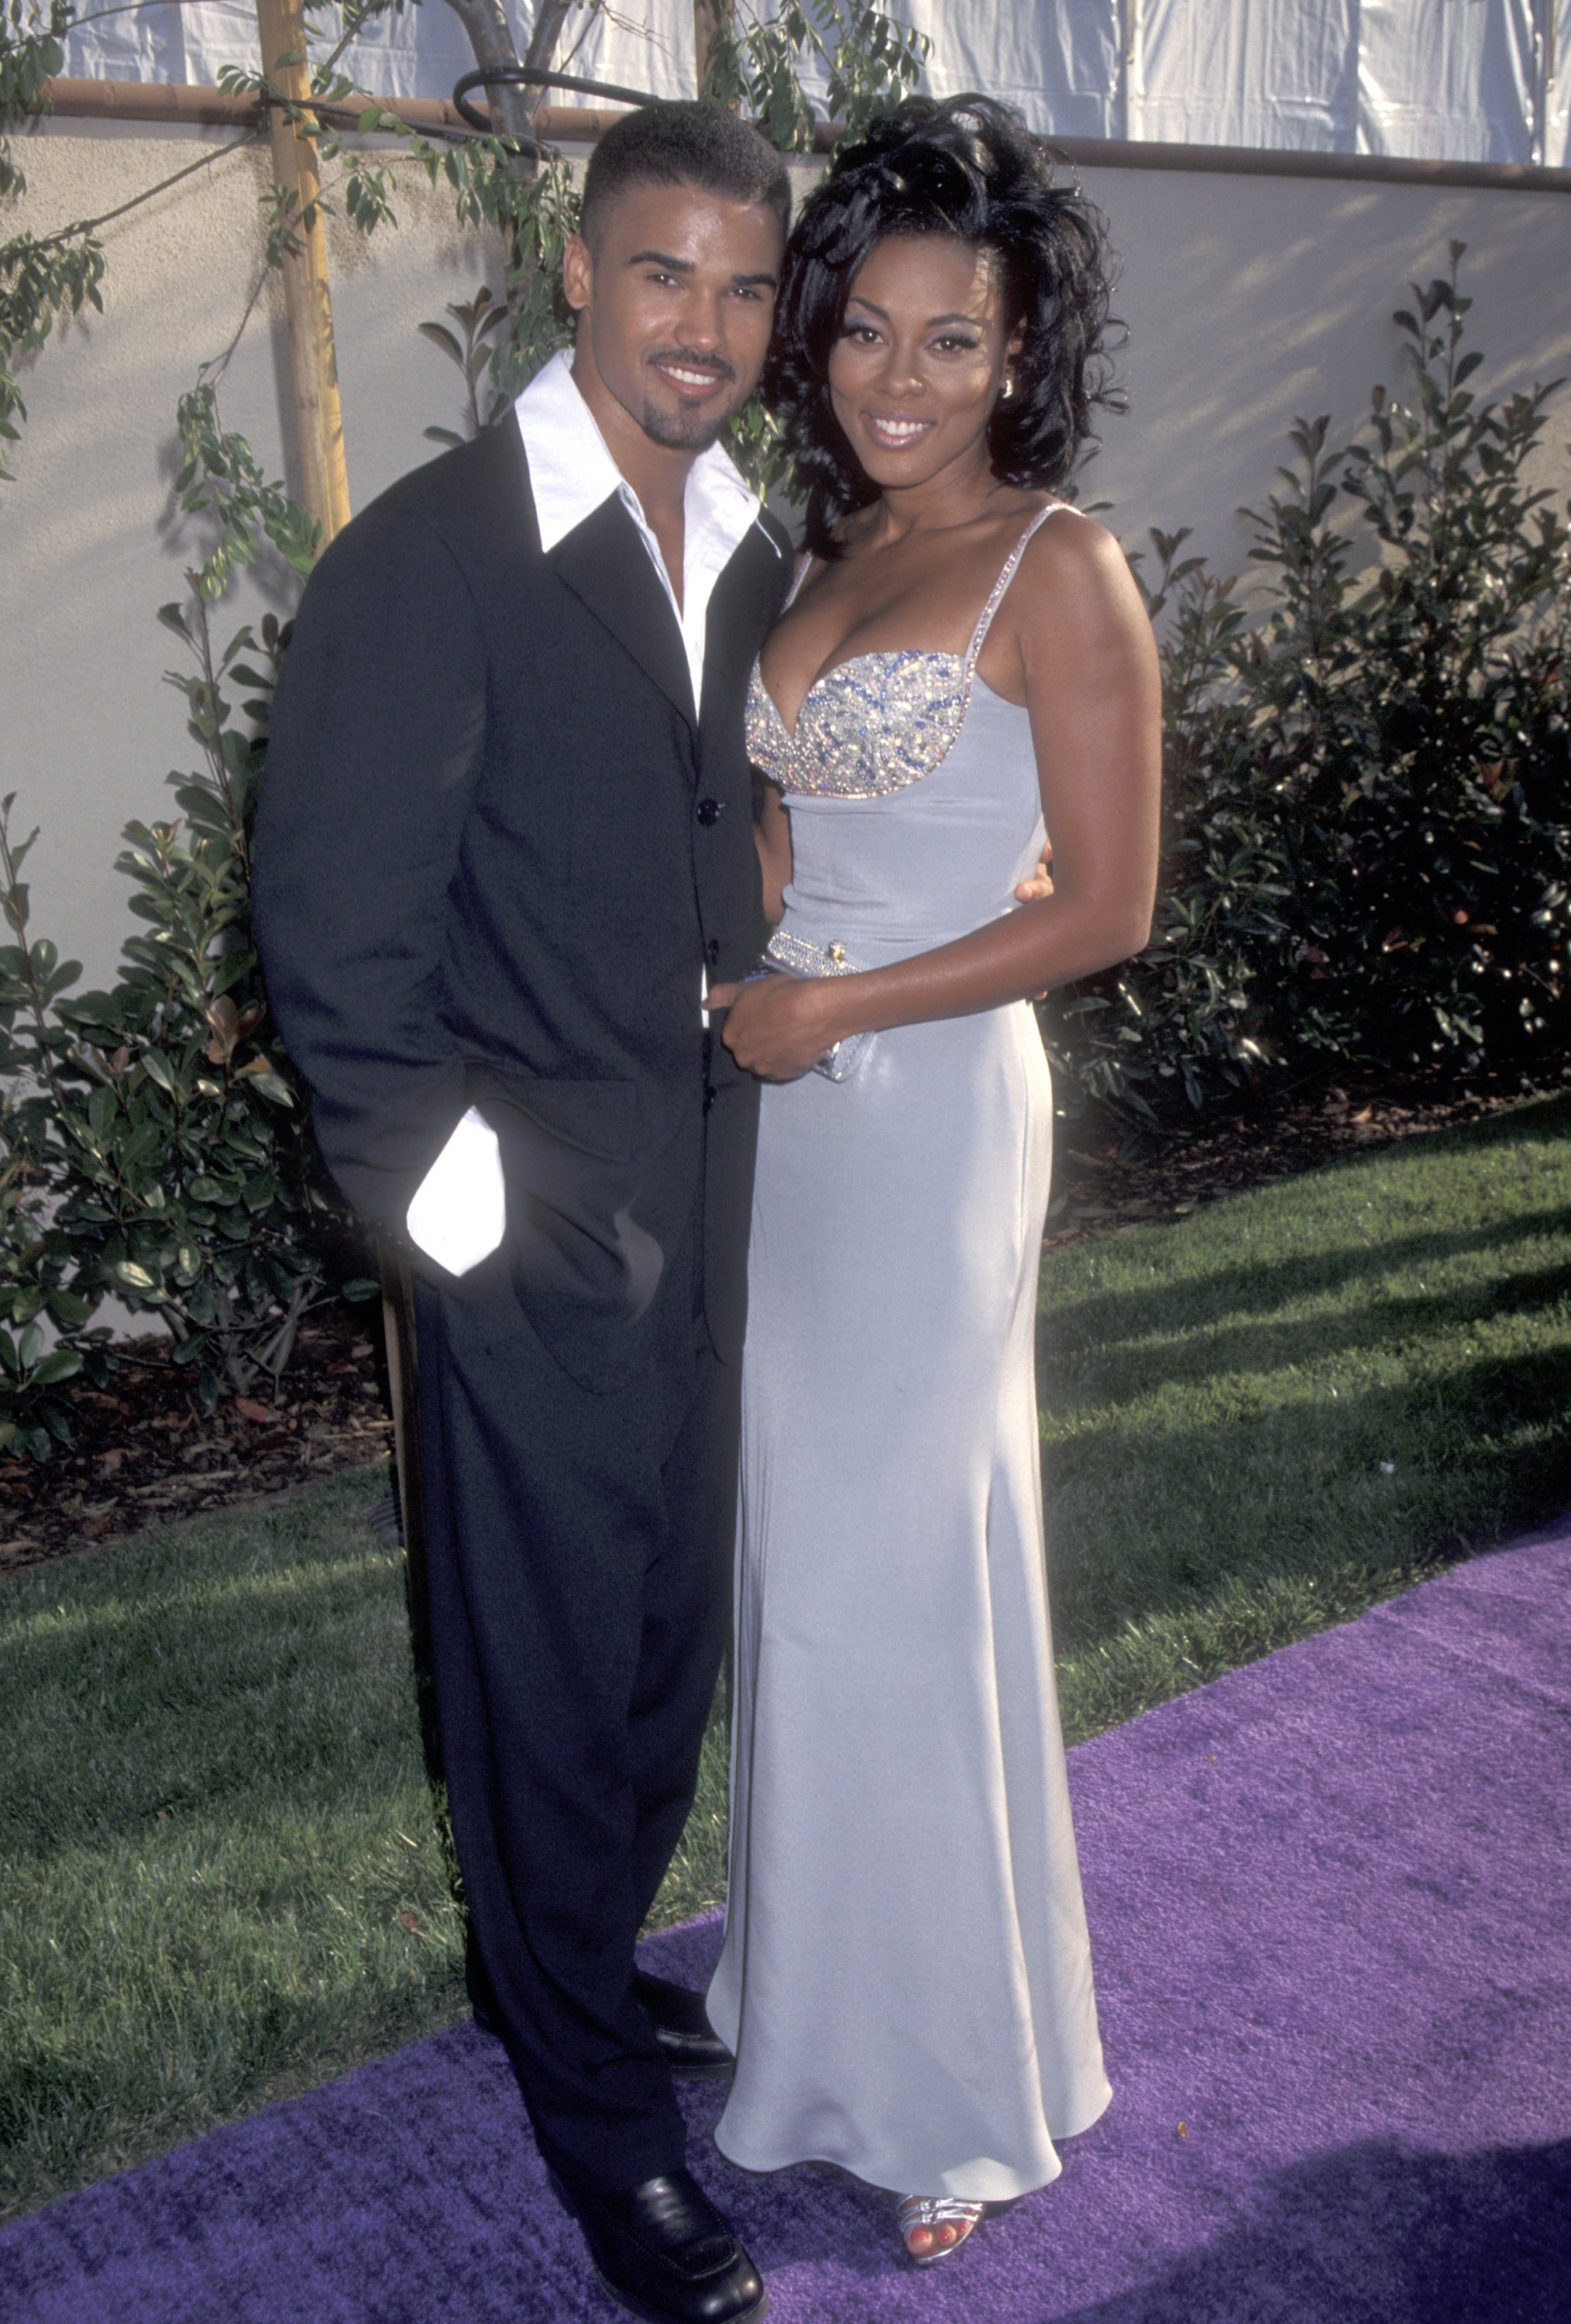 Shemar Moore and Actress Lela Rochon attend the Fifth Annual MTV Movie Awards on June 8, 1996, in Burbank, California. | Source: Getty Images.